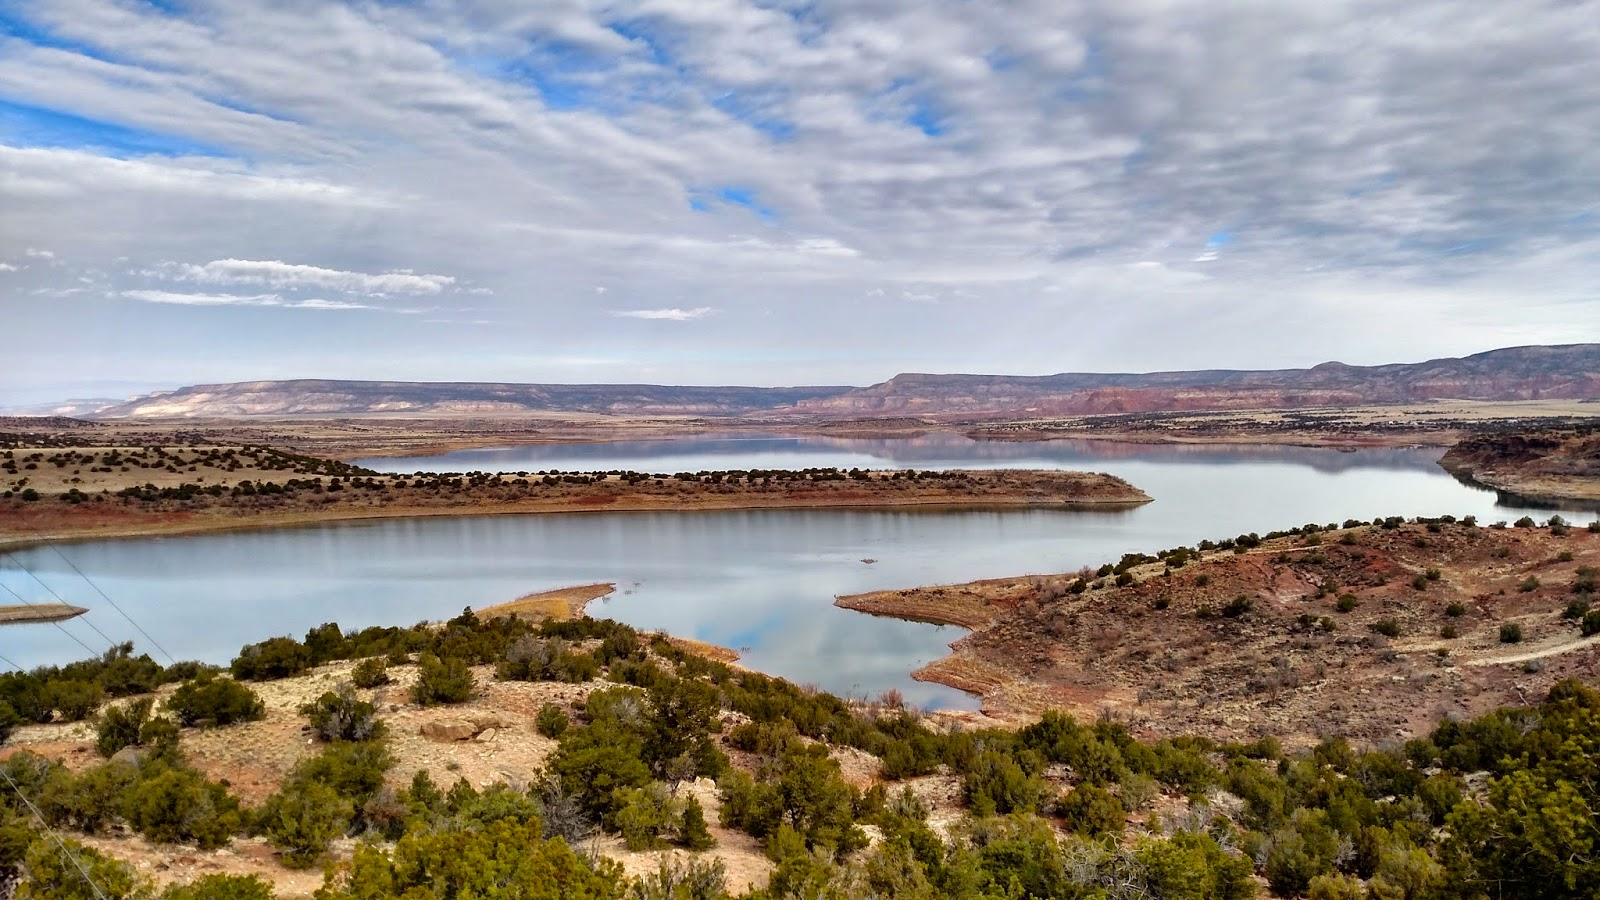 New mexico rio arriba county abiquiu - Serene Abiquiu Lake On Morning Of March 19th